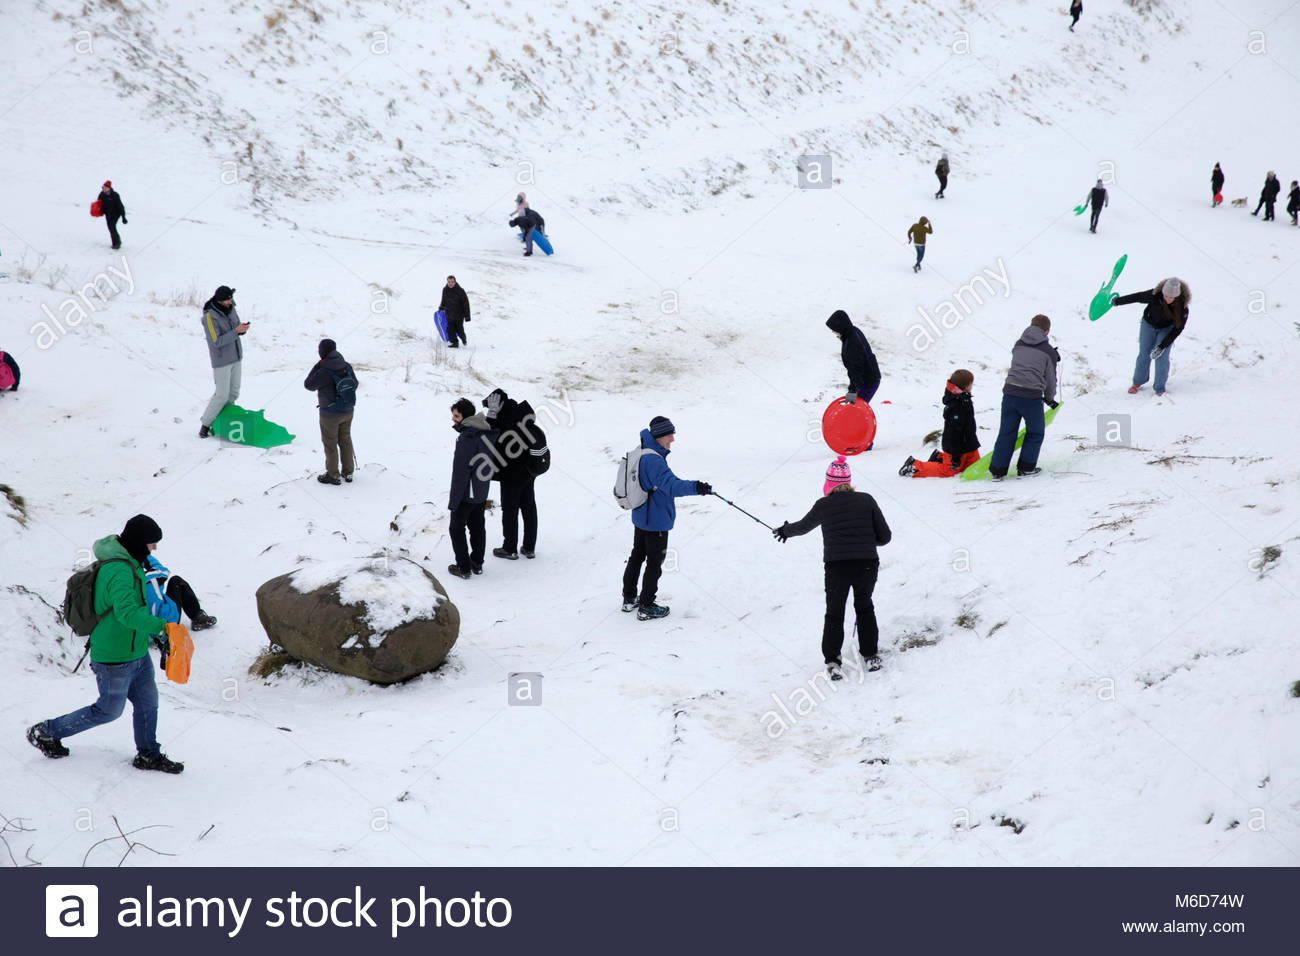 Edinburgh, United Kingdom. 2nd March, 2018. Winter snowfall affecting Arthur's Seat and Holyrood Park. Walkers - Stock Image